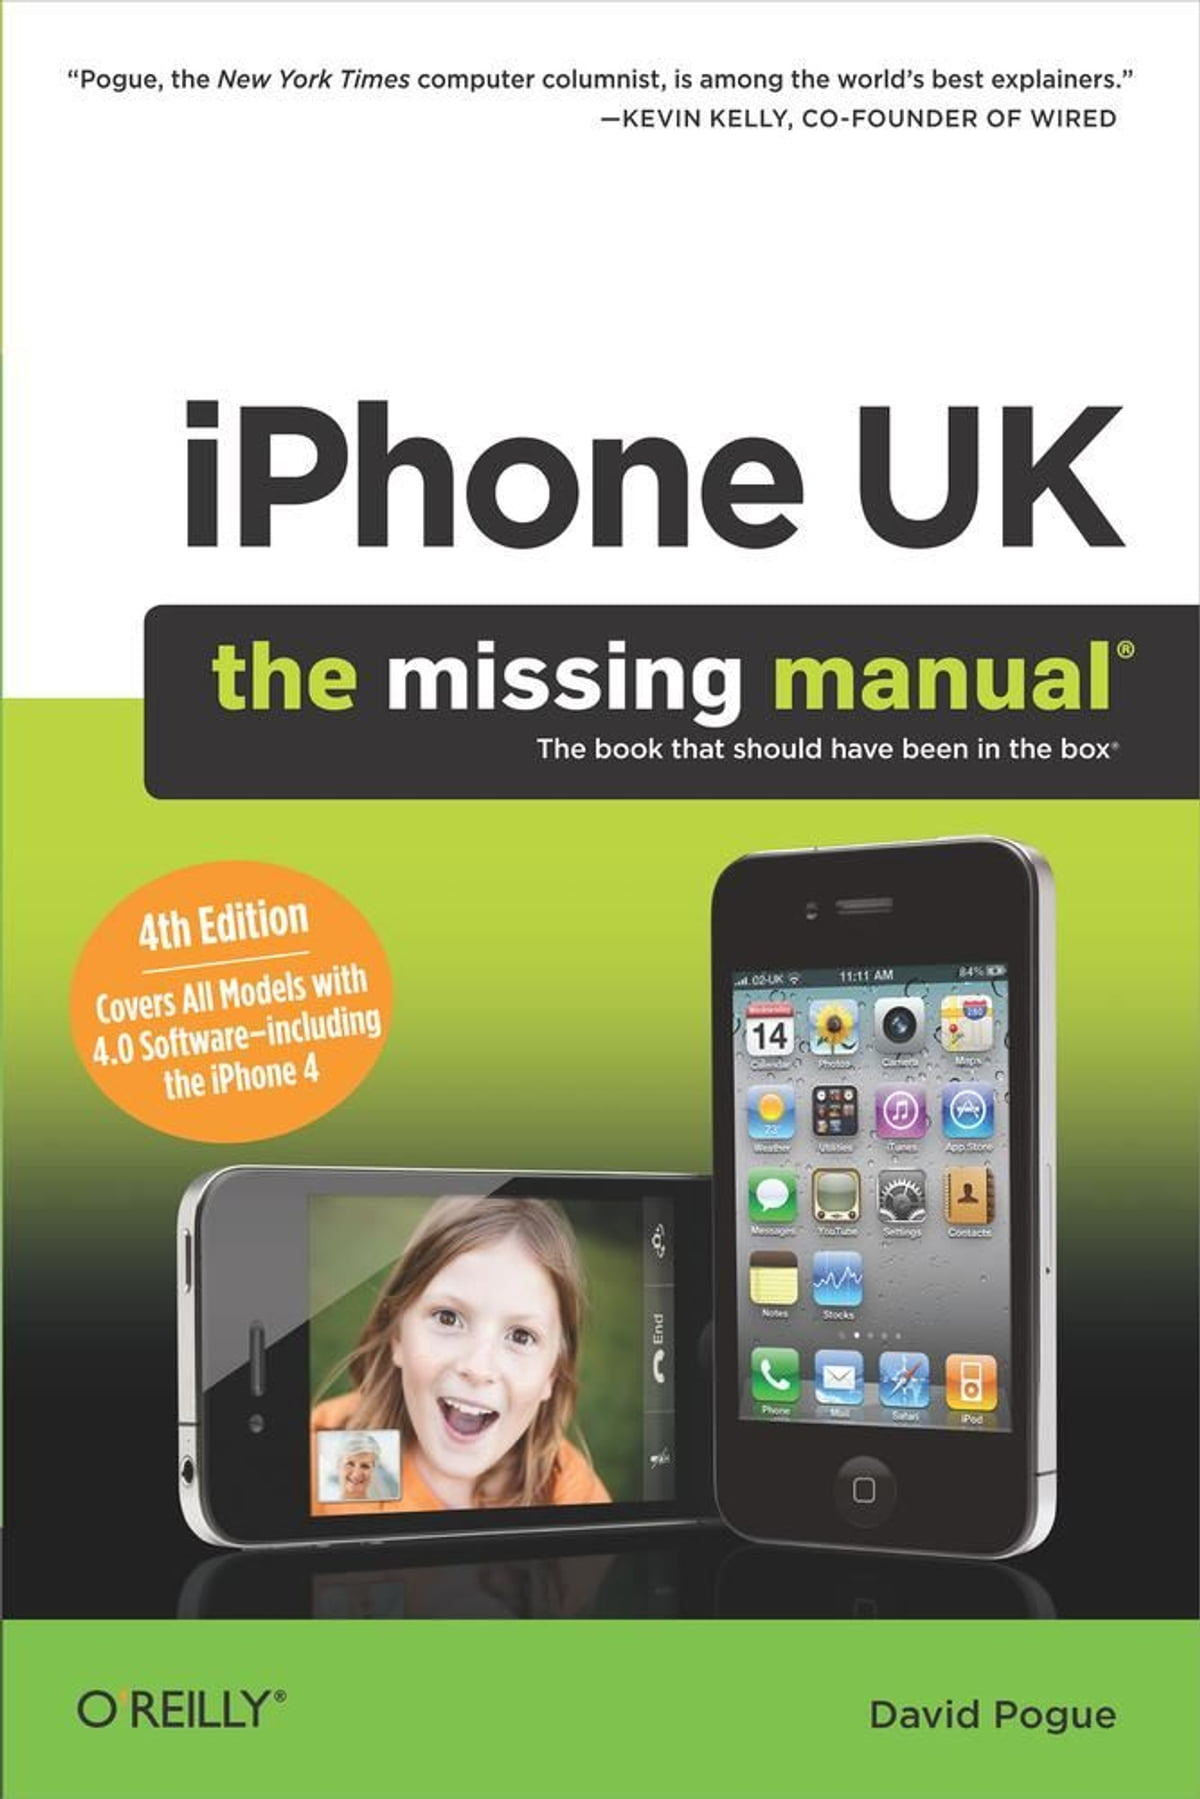 iPhone UK: The Missing Manual eBook de David Pogue - 9781449397715 |  Rakuten Kobo